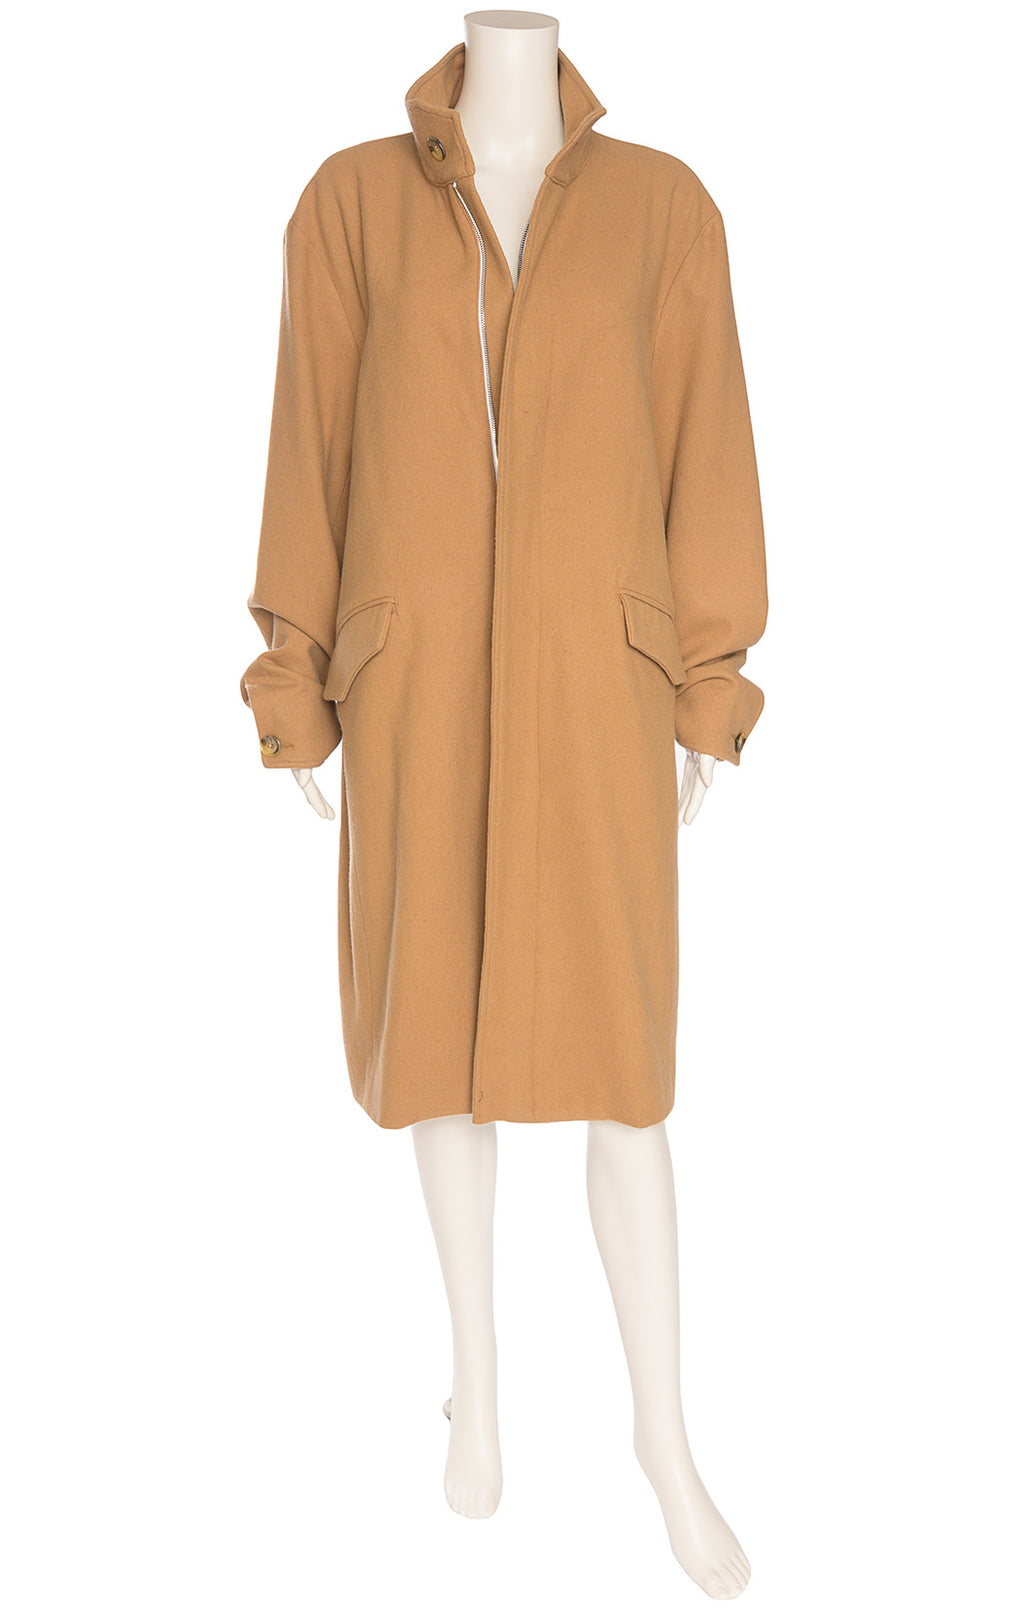 Camel colored long sleeve collared coat